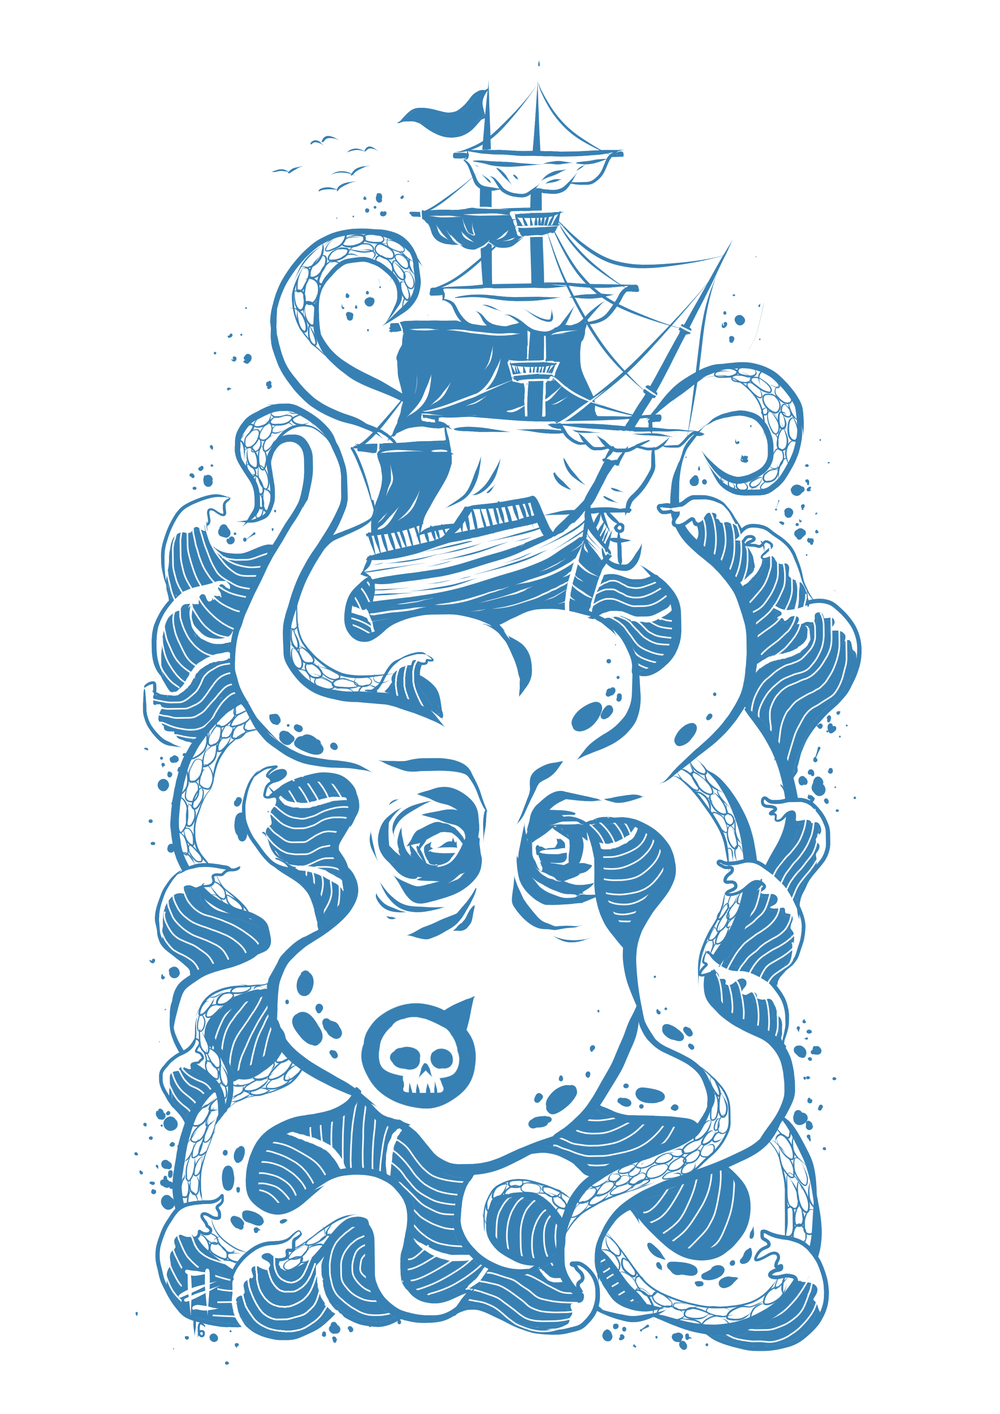 Octopus and ship.jpg